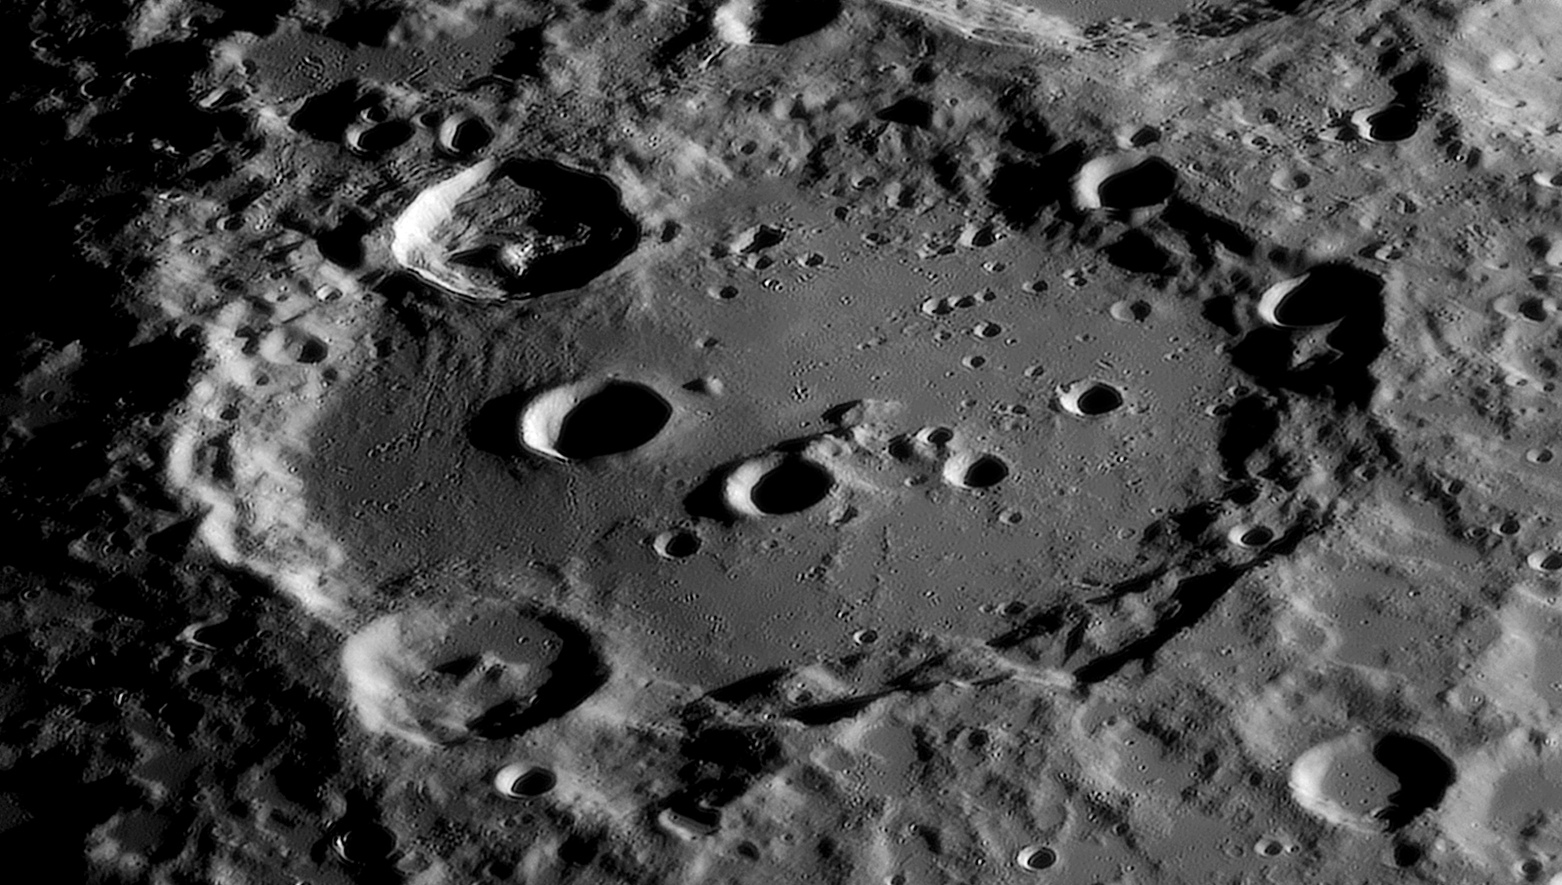 large.Moon_09_10_2020_02_29_47_R_.jpg.a106eabea82220efea618df62cd2231f.jpg